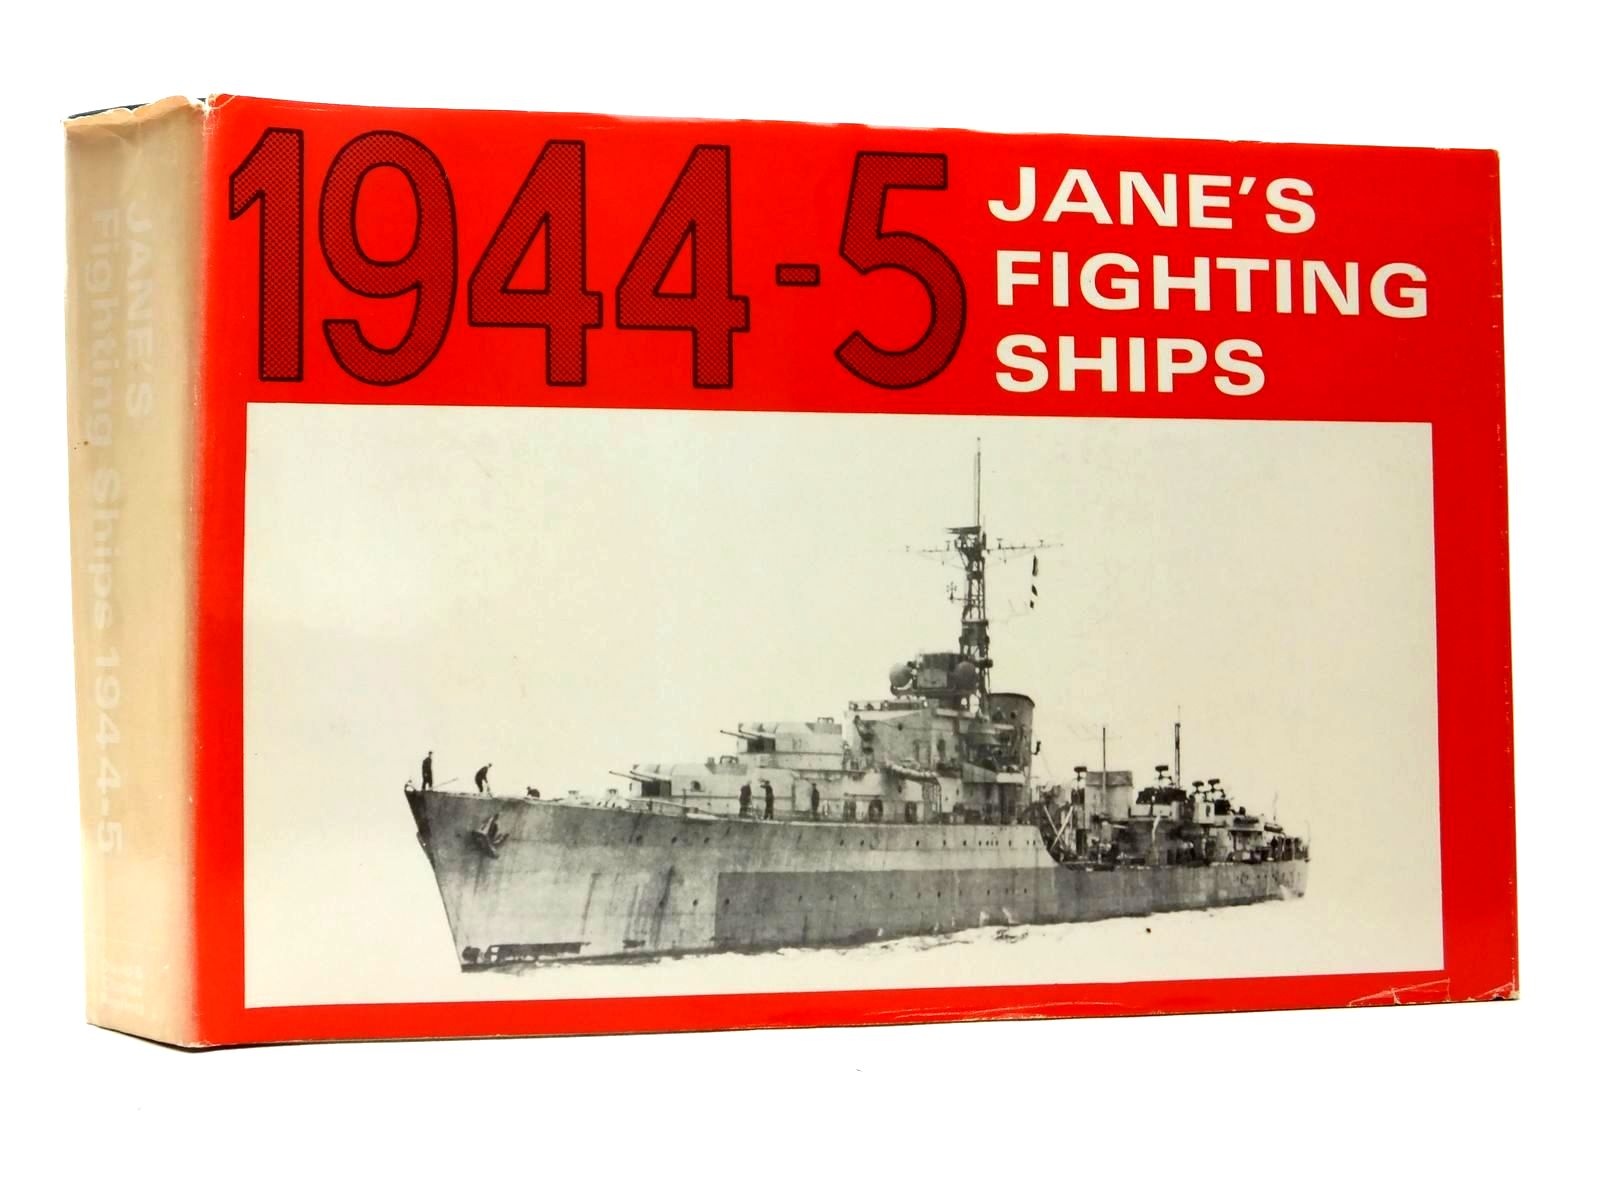 Photo of JANE'S FIGHTING SHIPS 1944-5 written by Jane, Fred T. McMurtrie, Francis E. published by David & Charles (STOCK CODE: 2123463)  for sale by Stella & Rose's Books